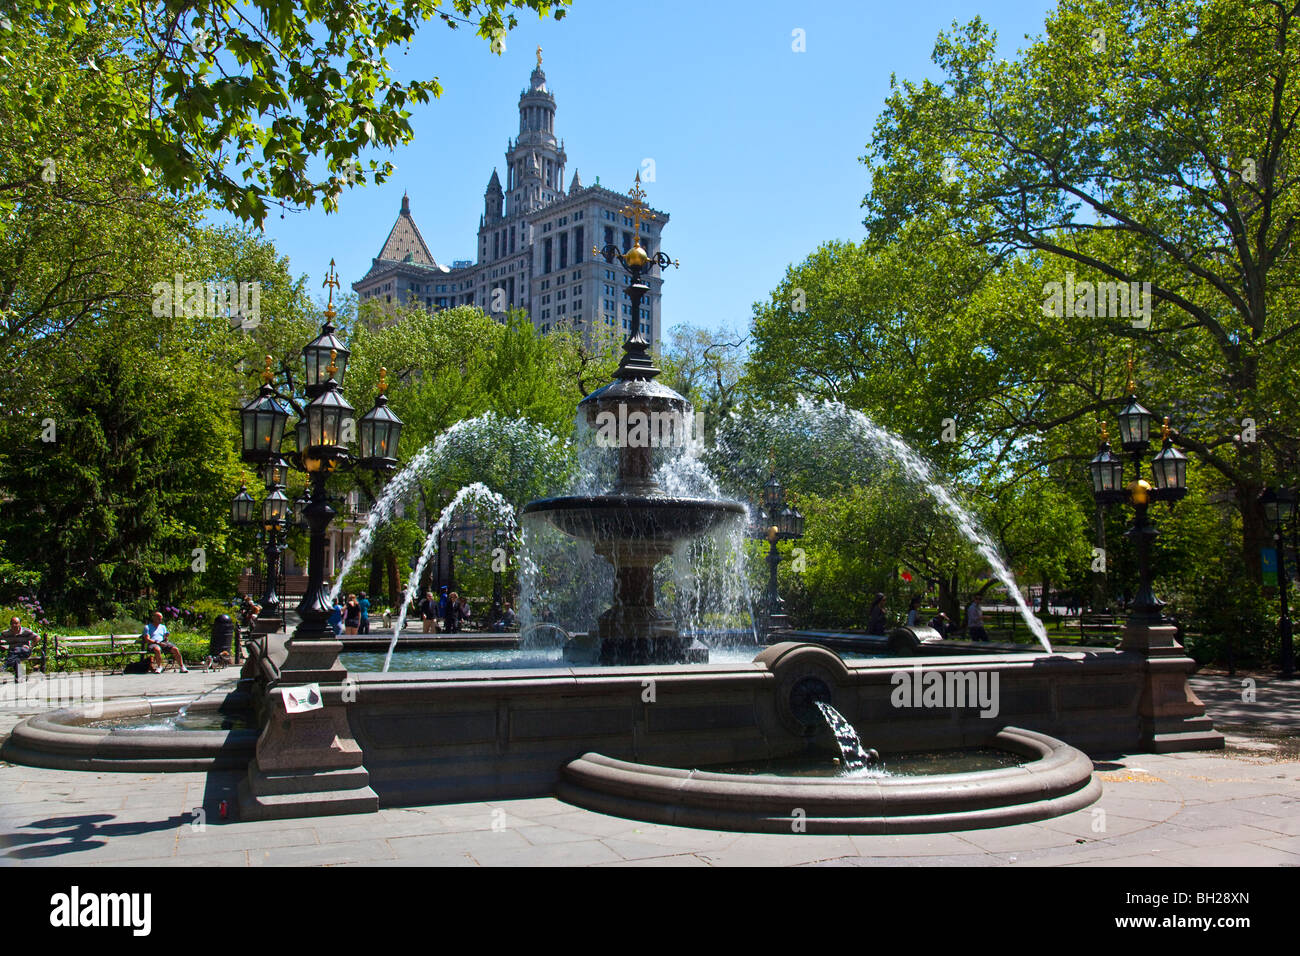 City Hall Park, Manhattan, New York City - Stock Image